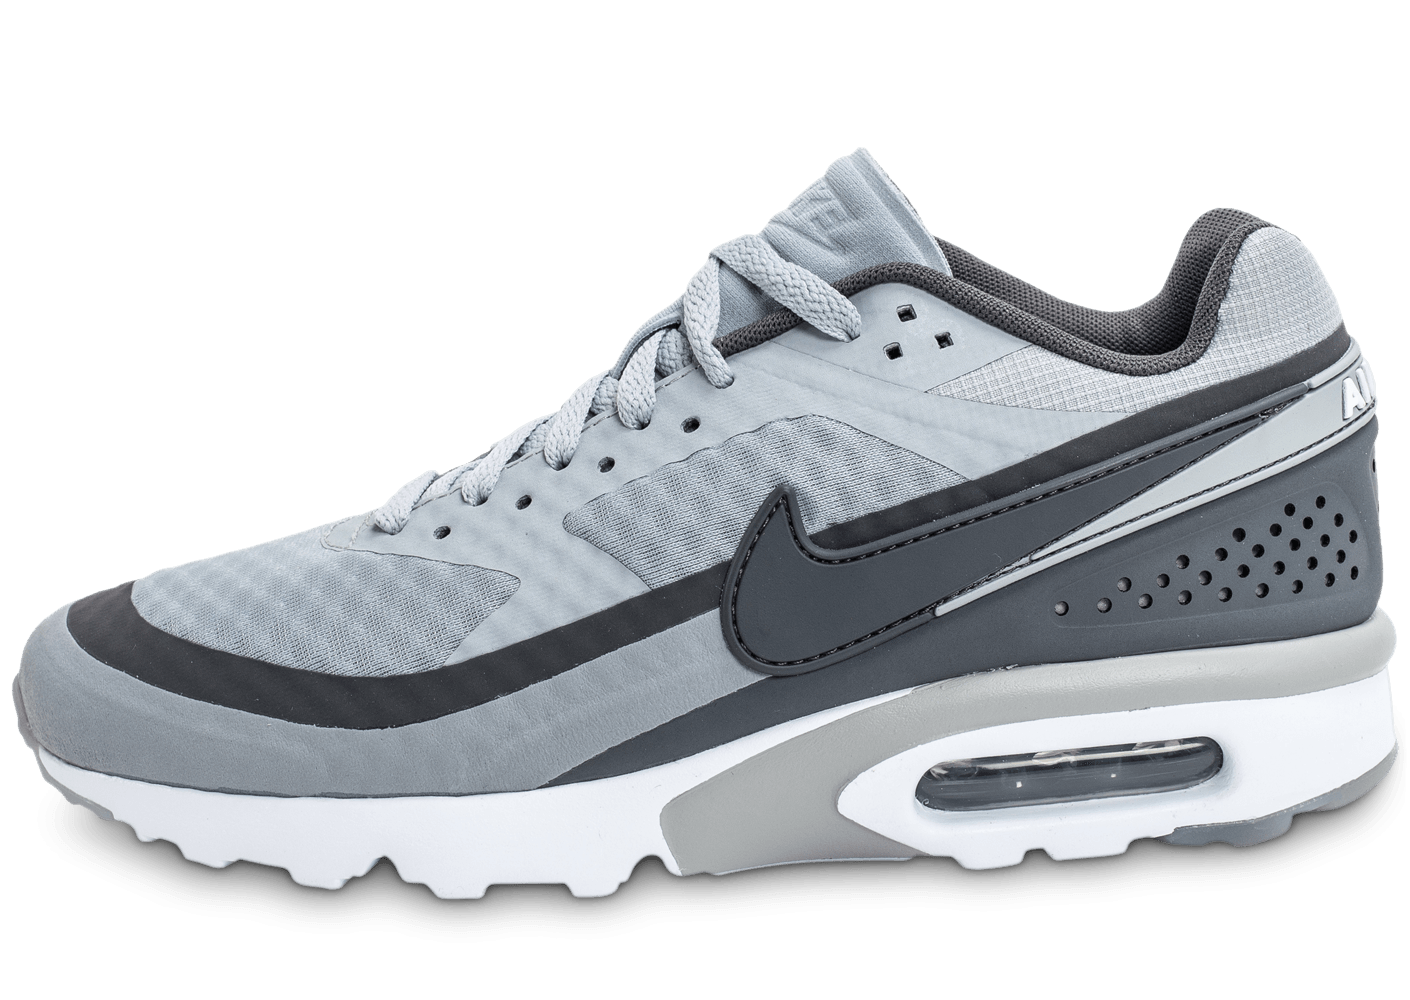 low priced 0d9f7 1484d air max bw grise